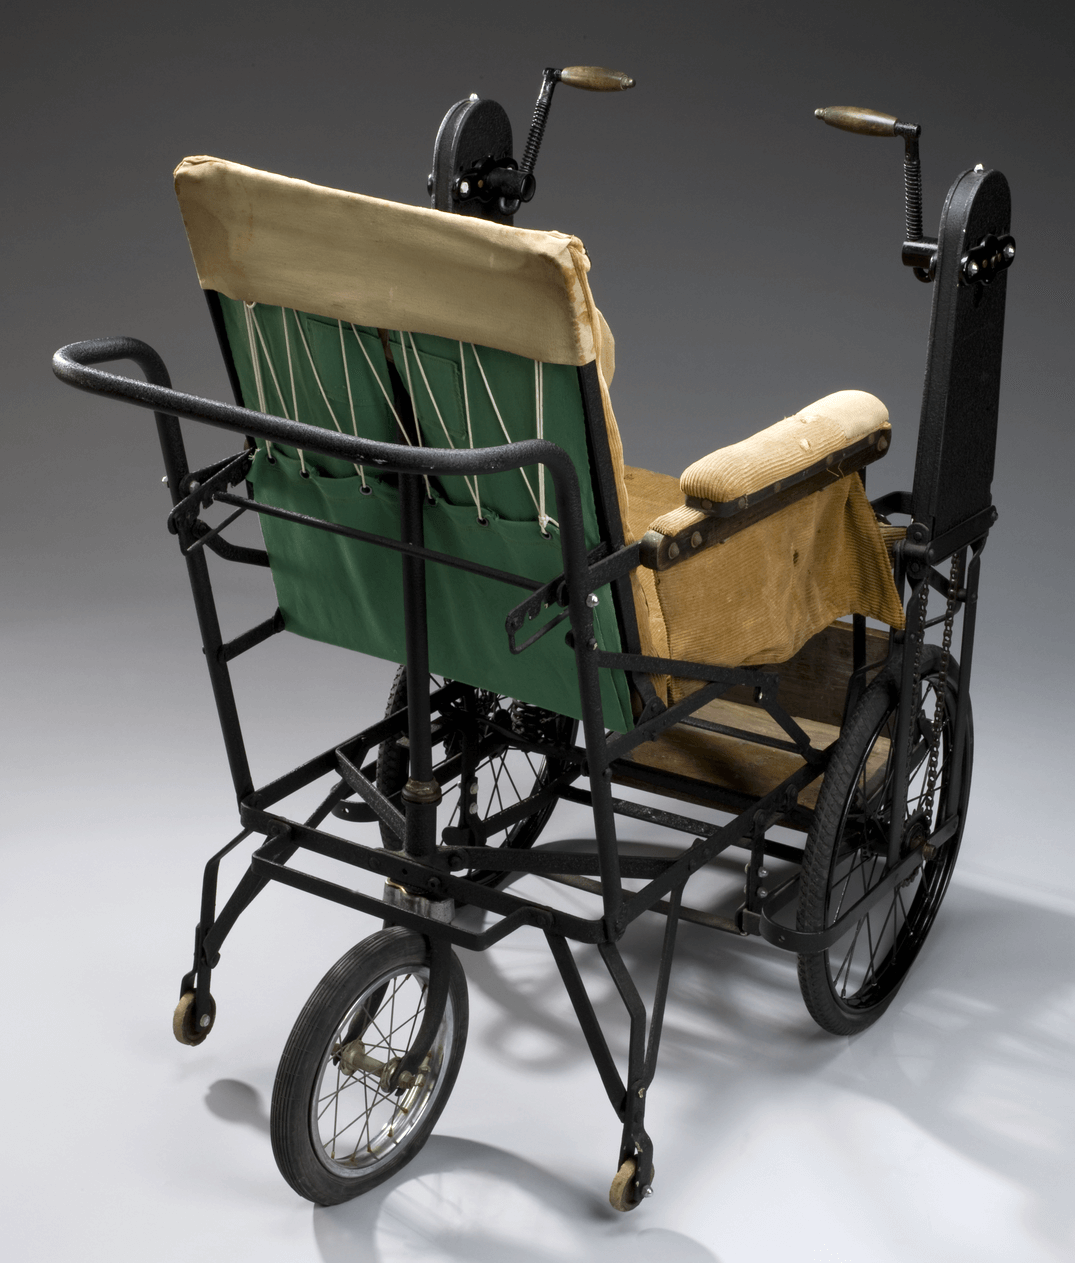 A hand-cranked wheelchair build between 1920-20